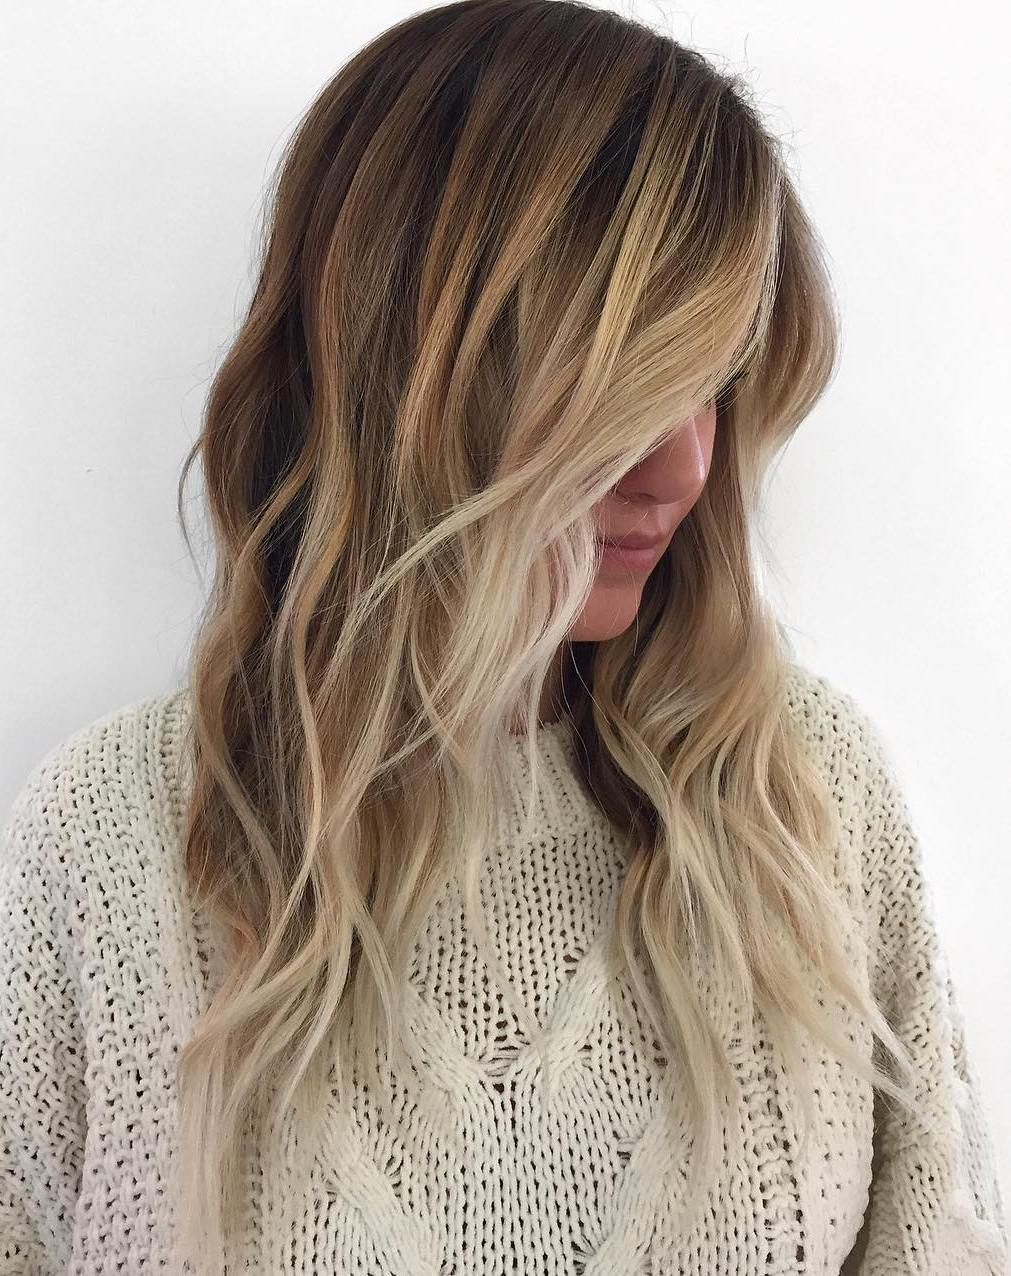 20 Honey Balayage Pictures That Really Inspire You to Try Highlights